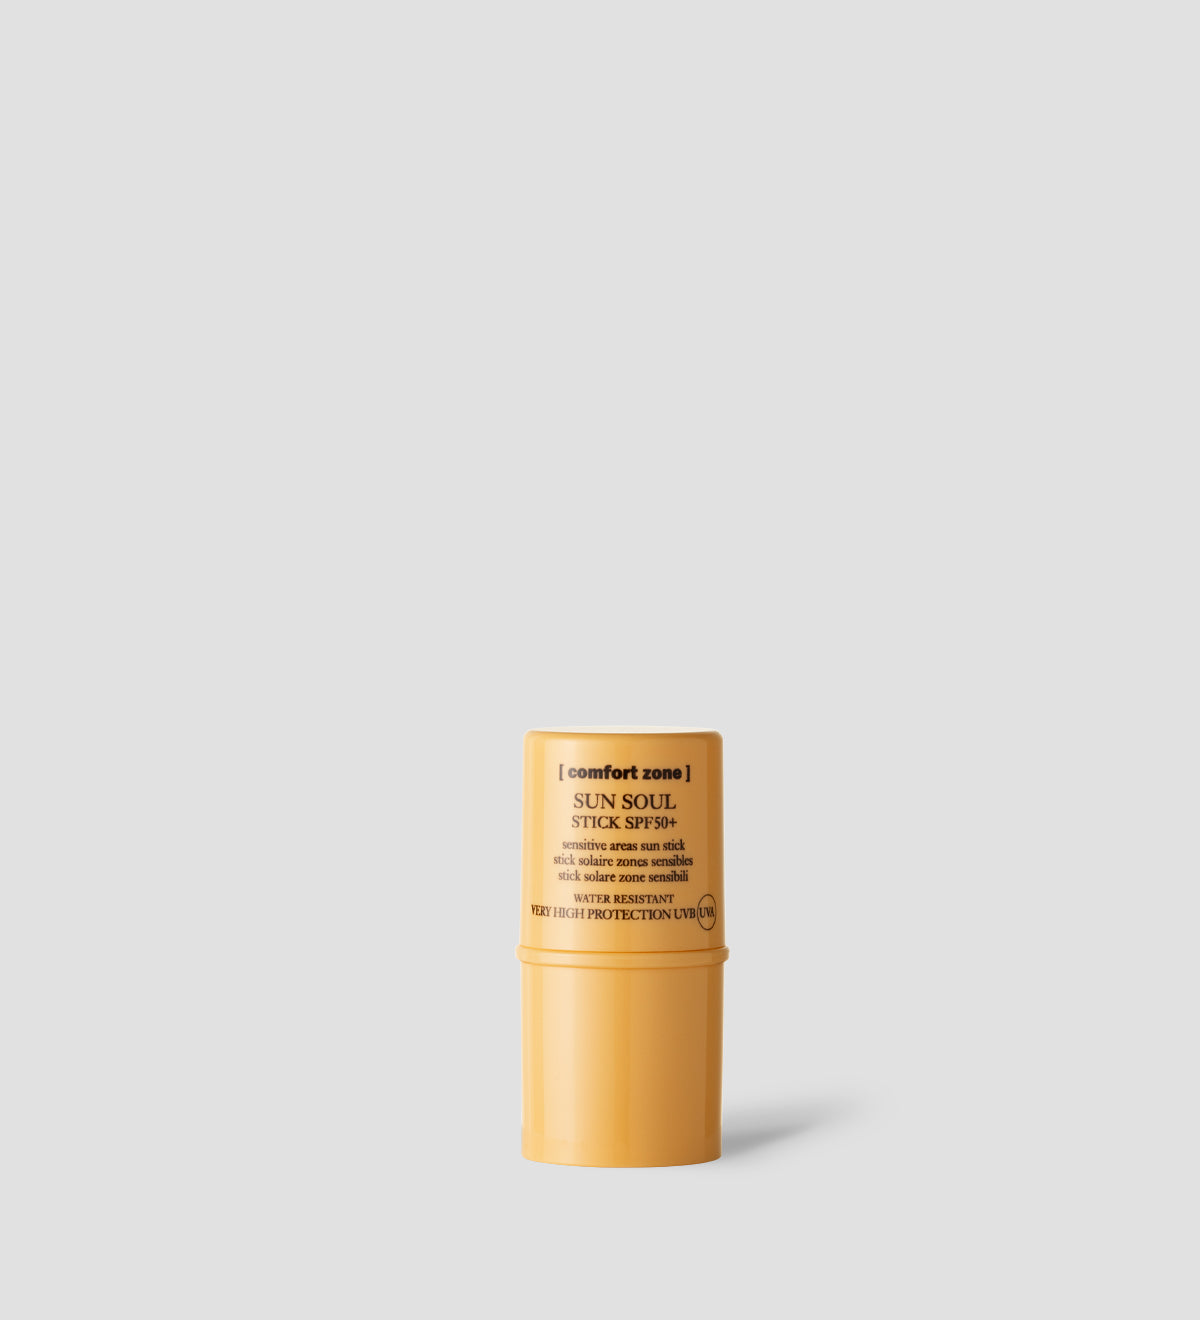 Comfort Zone: SUN SOUL STICK SPF50+ Sensitive areas sun stick-1